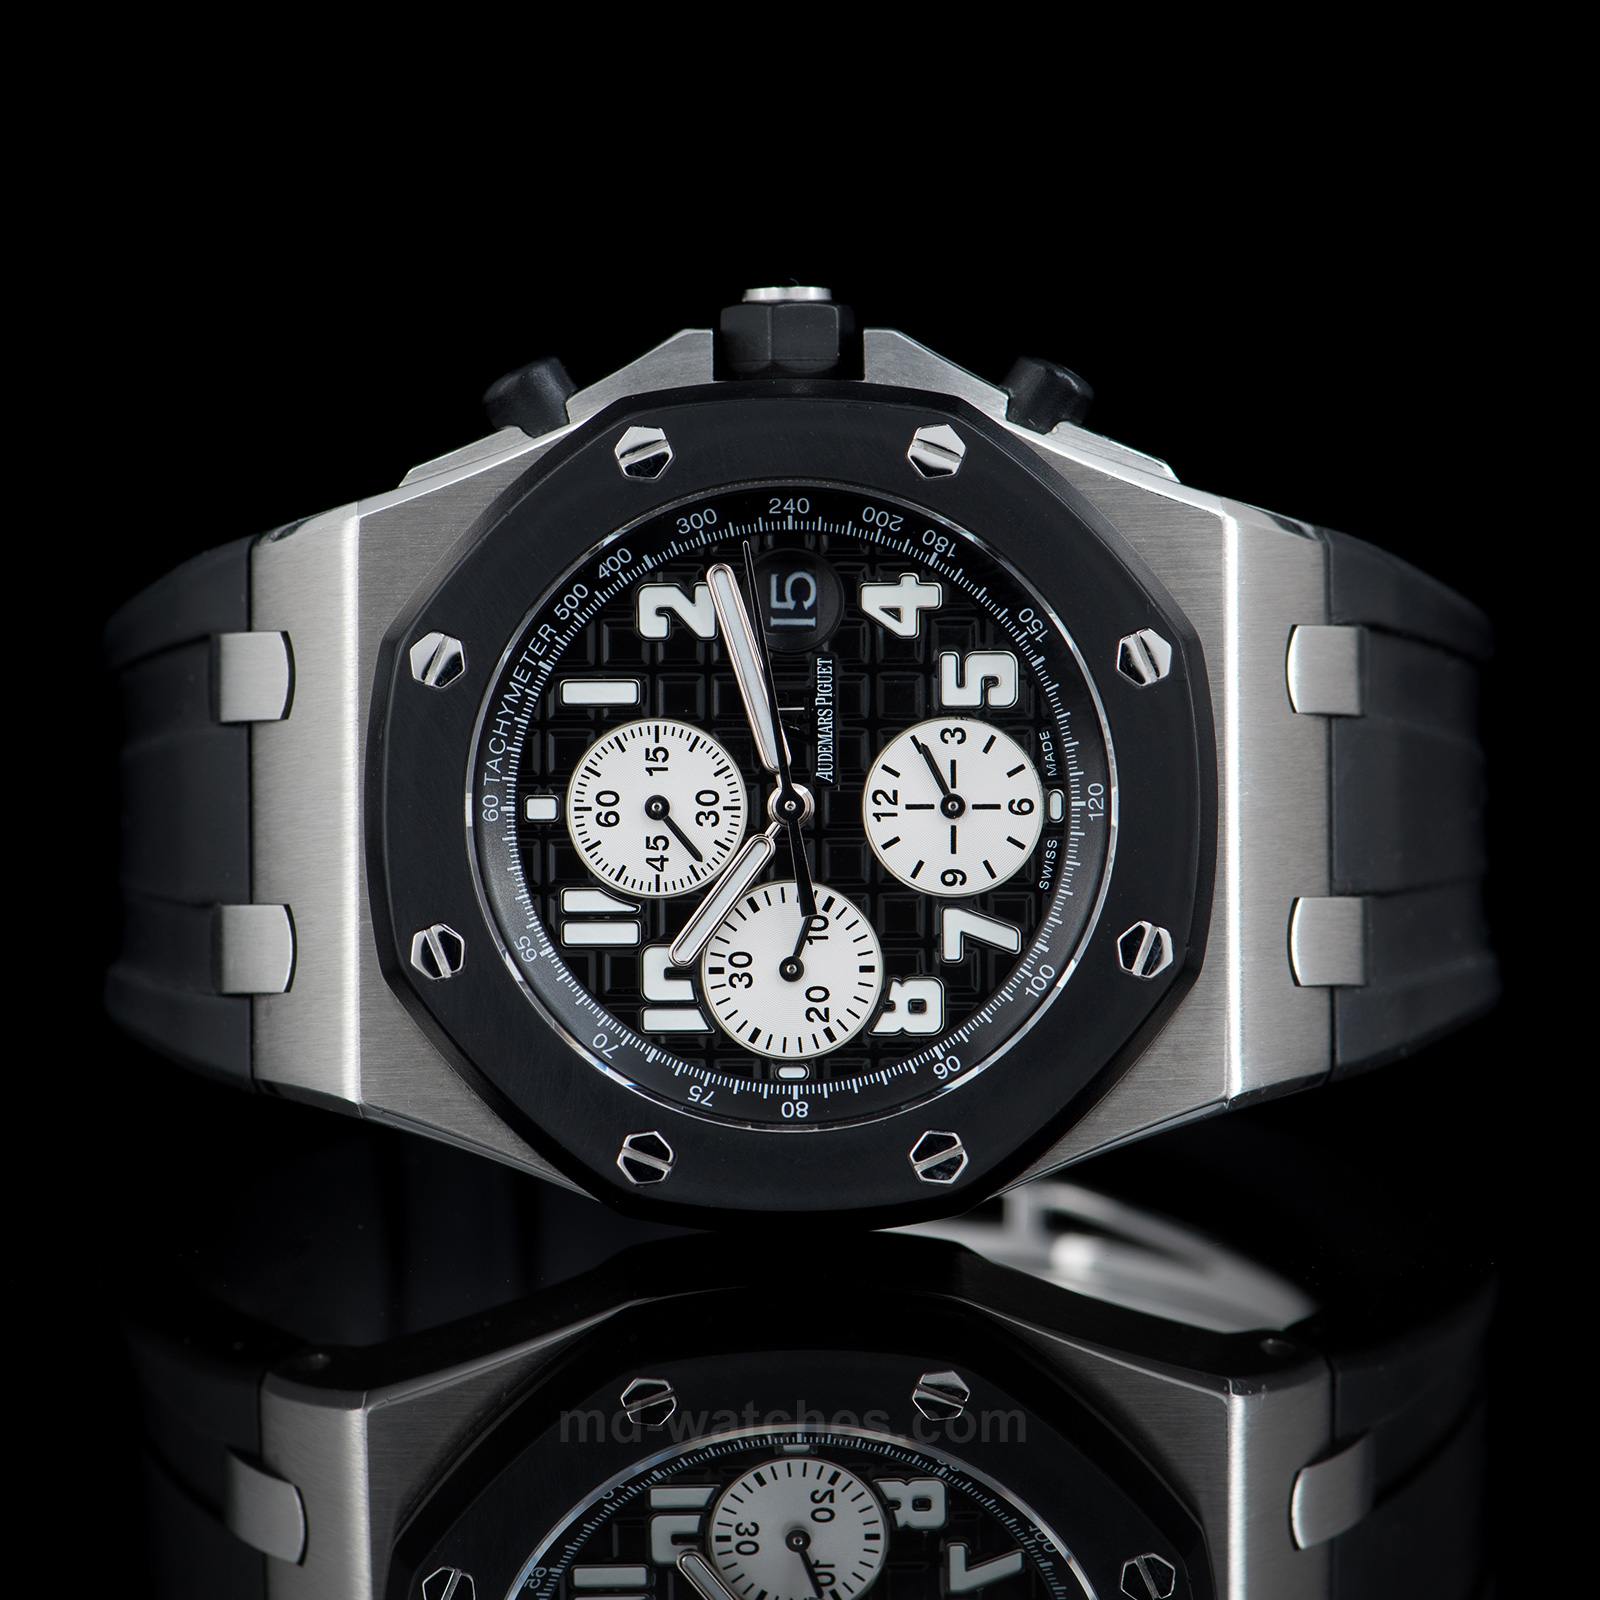 Audemars Piguet Royal Oak Offshore Chronograph Ref